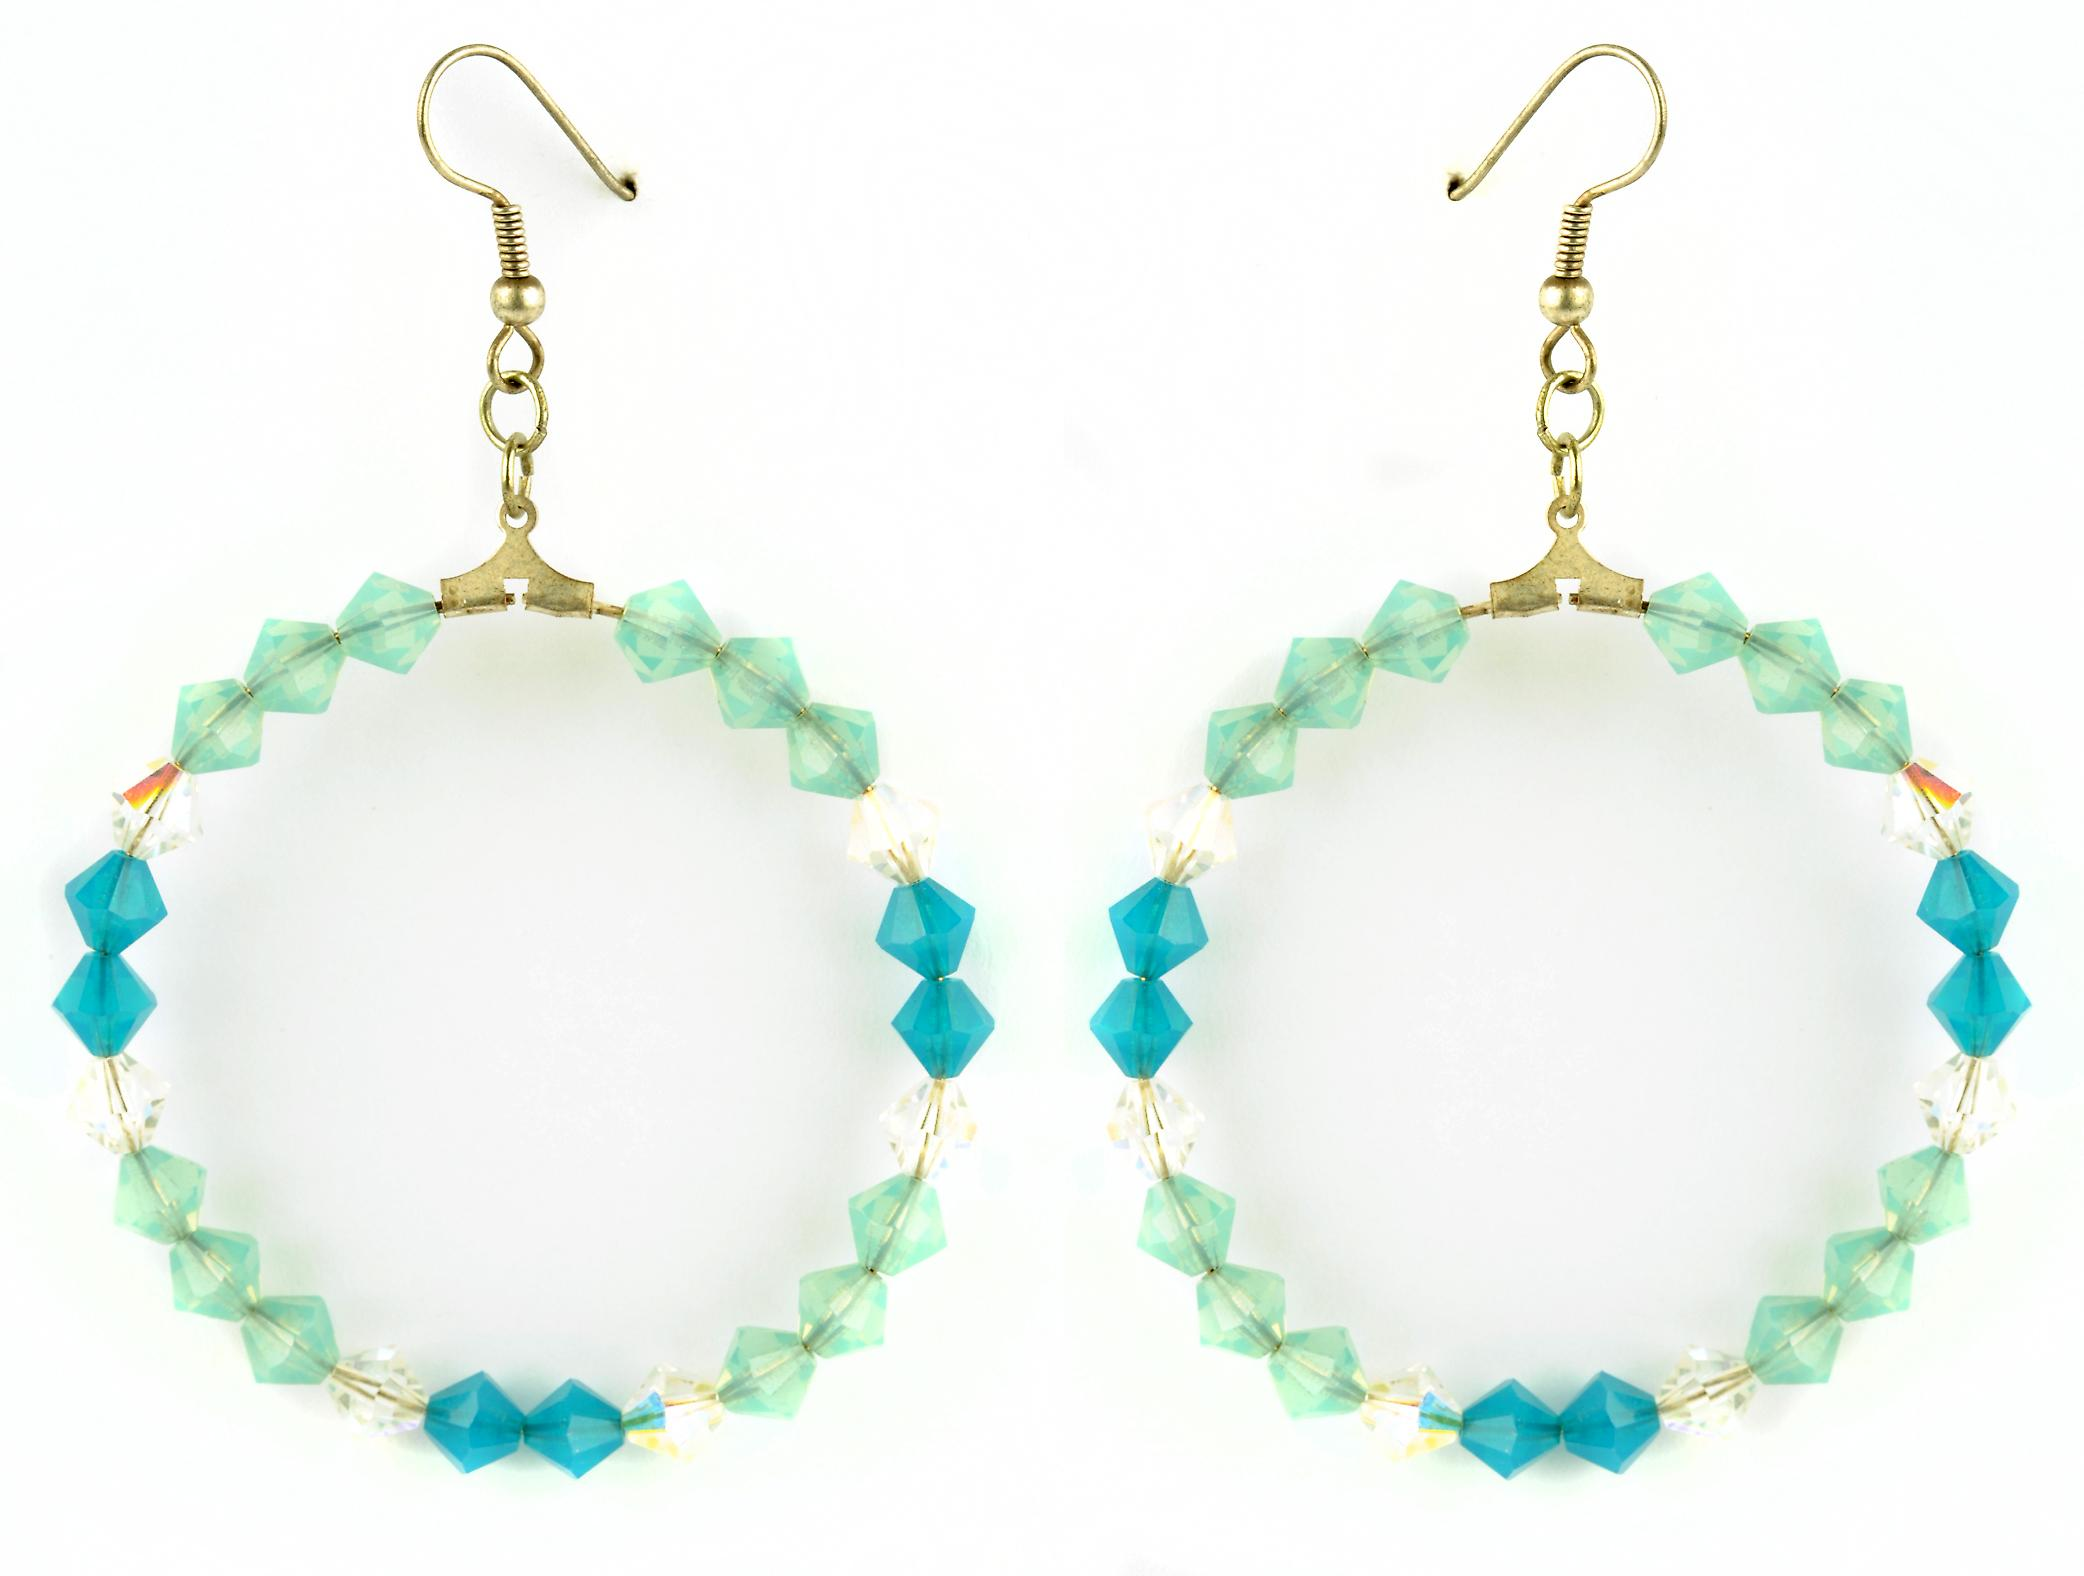 Waooh - Fashion Jewellery - WJ0764 - In Ear Style Creole Earrings with Swarovski Blue White Green